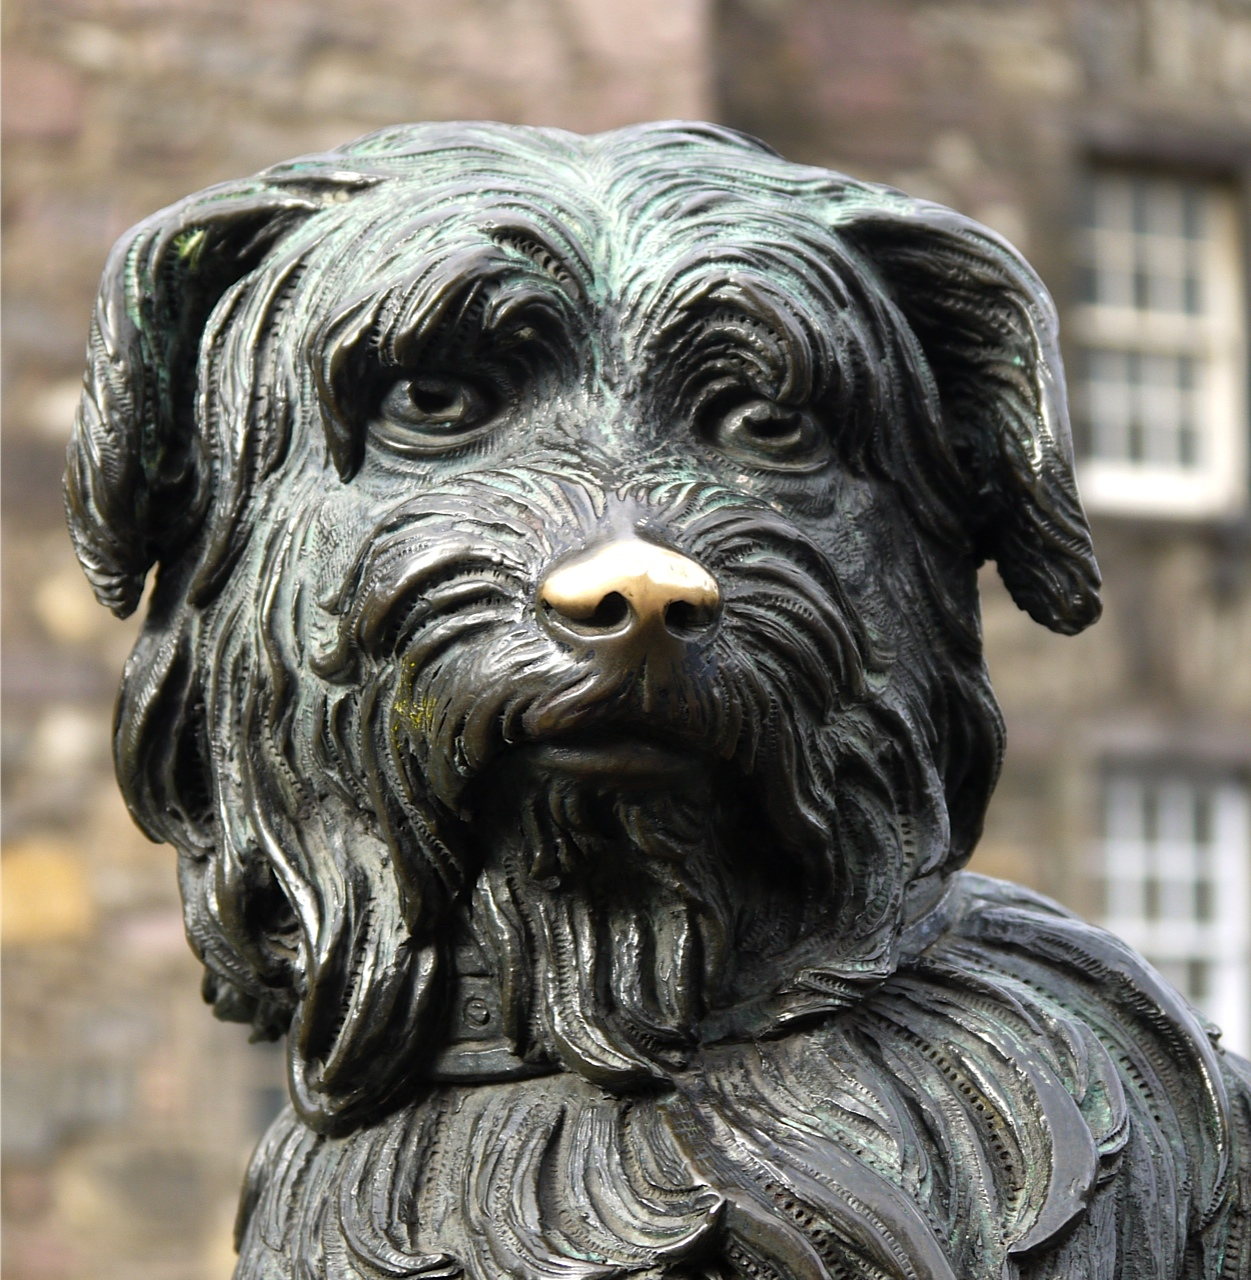 We have a statue in the memory of a dog called Bobby